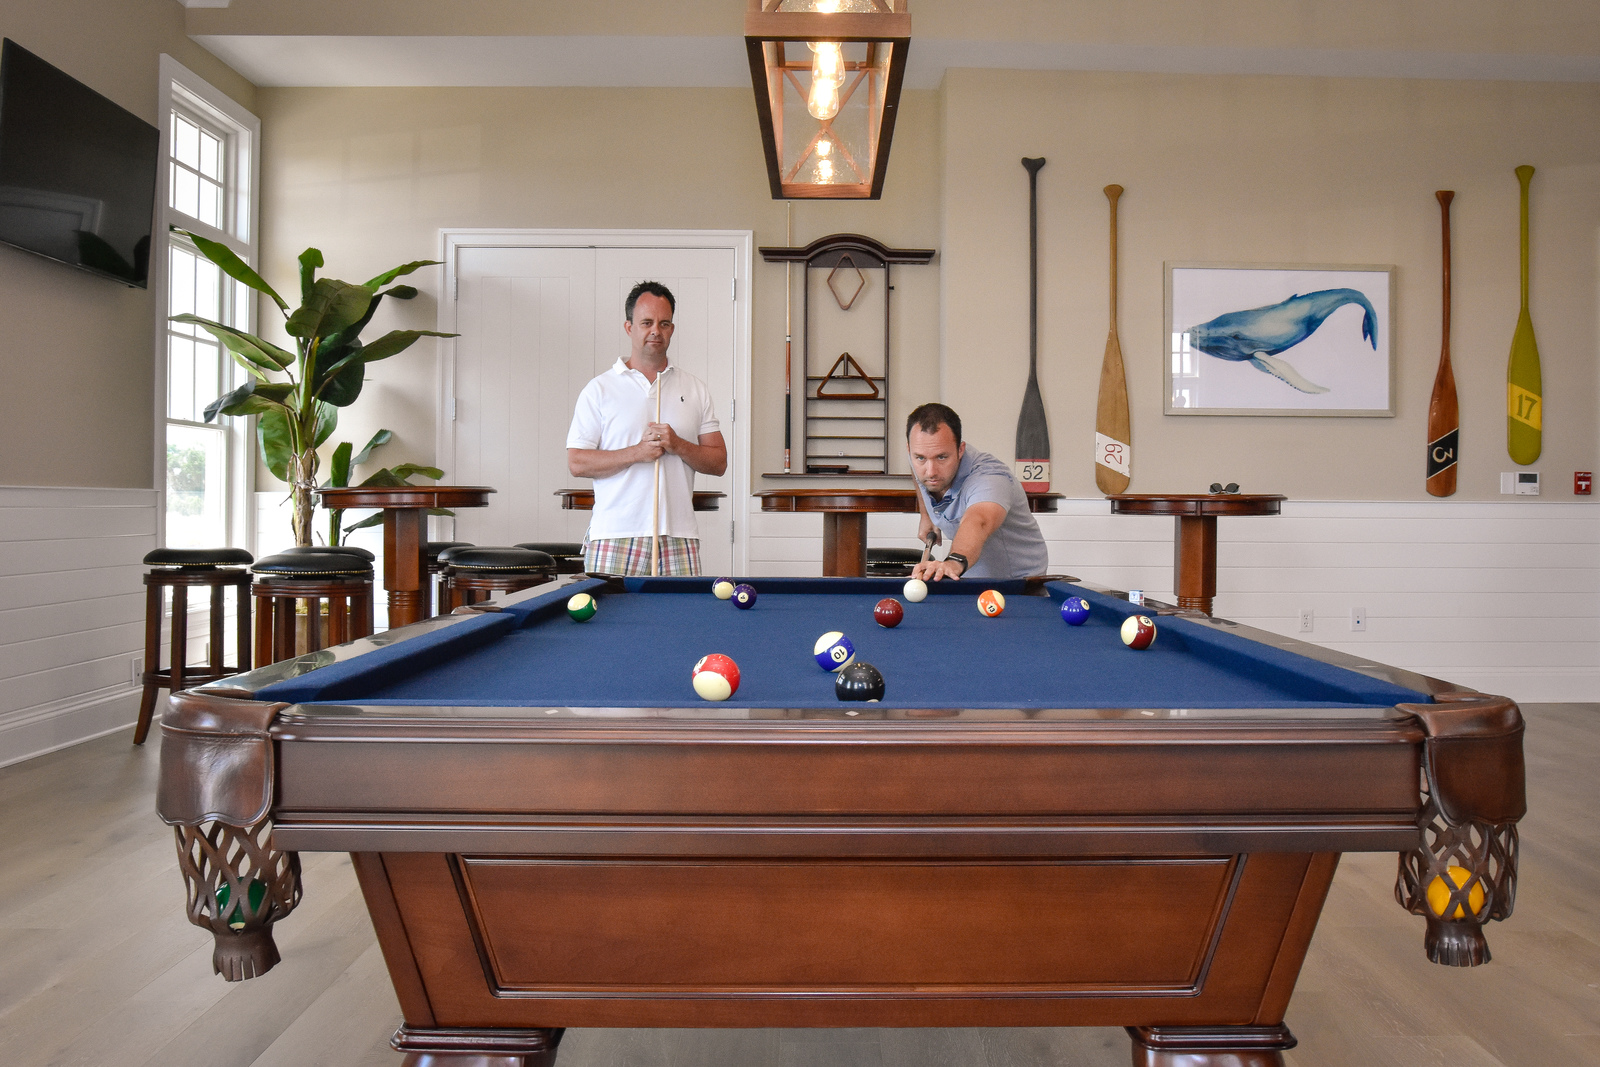 Play a few rounds on the community pool tables.